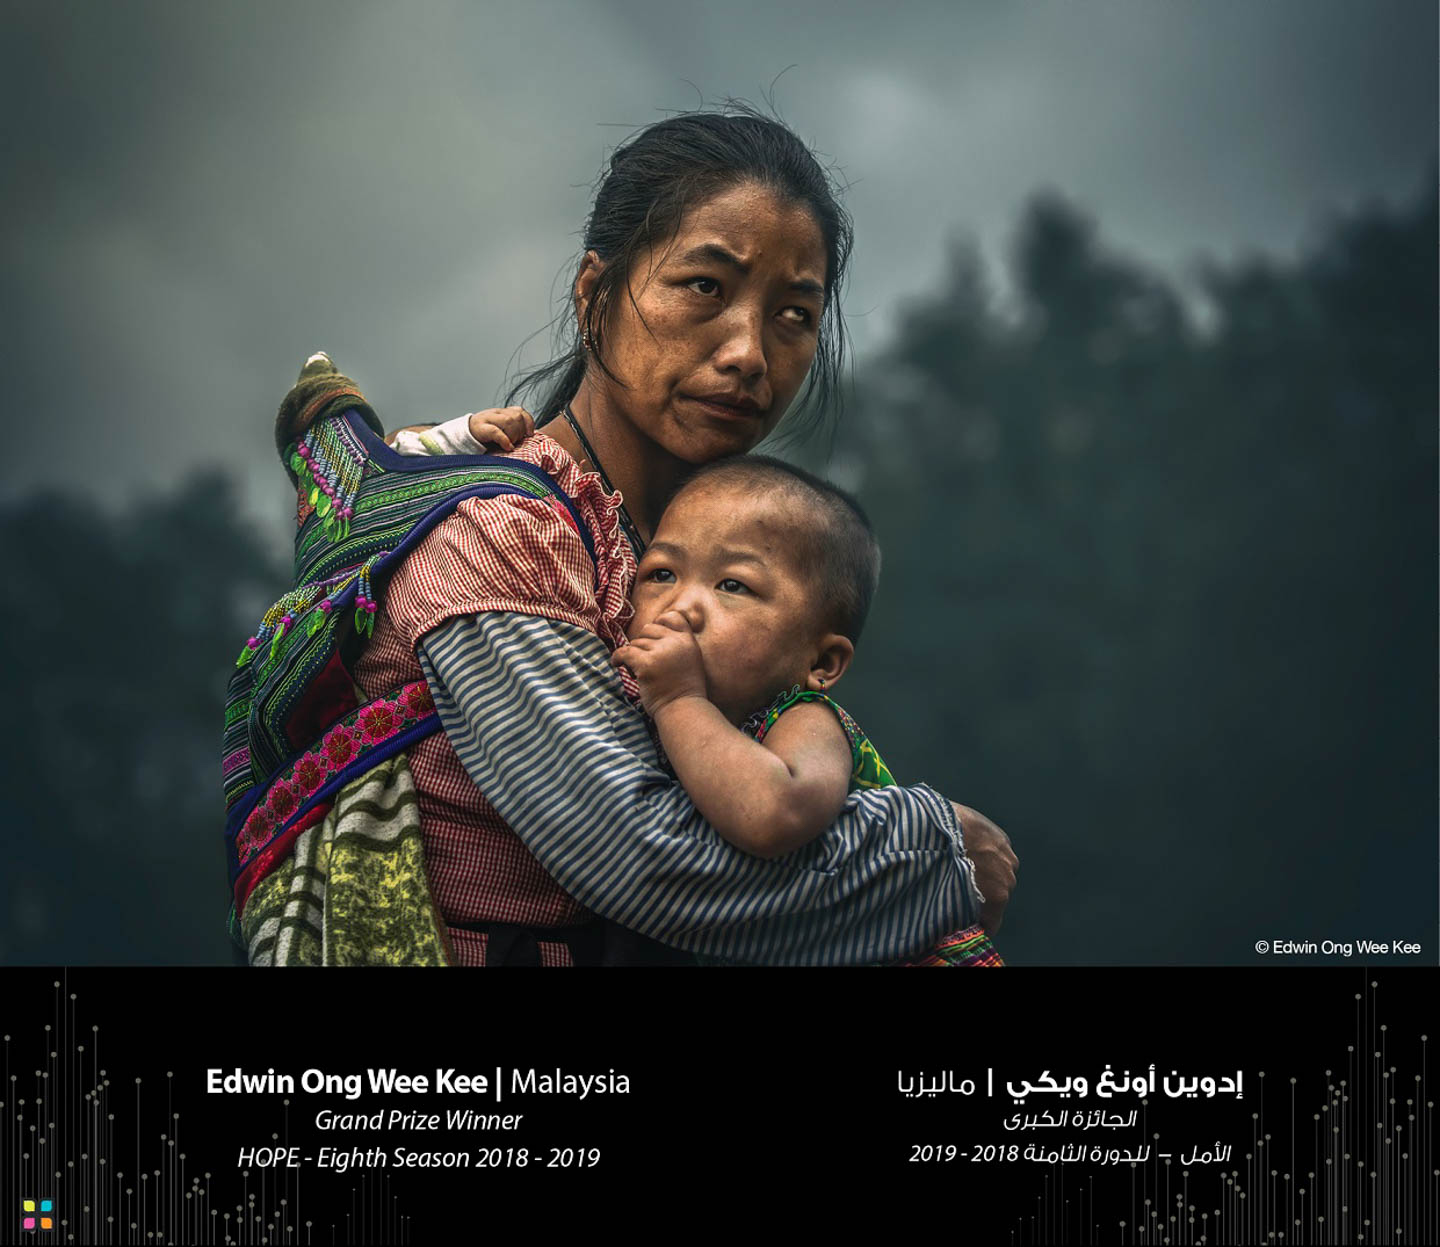 $120K HIPA Grand Prize Goes to Malaysian Photo Enthusiast Edwin Ong Wee Kee | PDNPulse